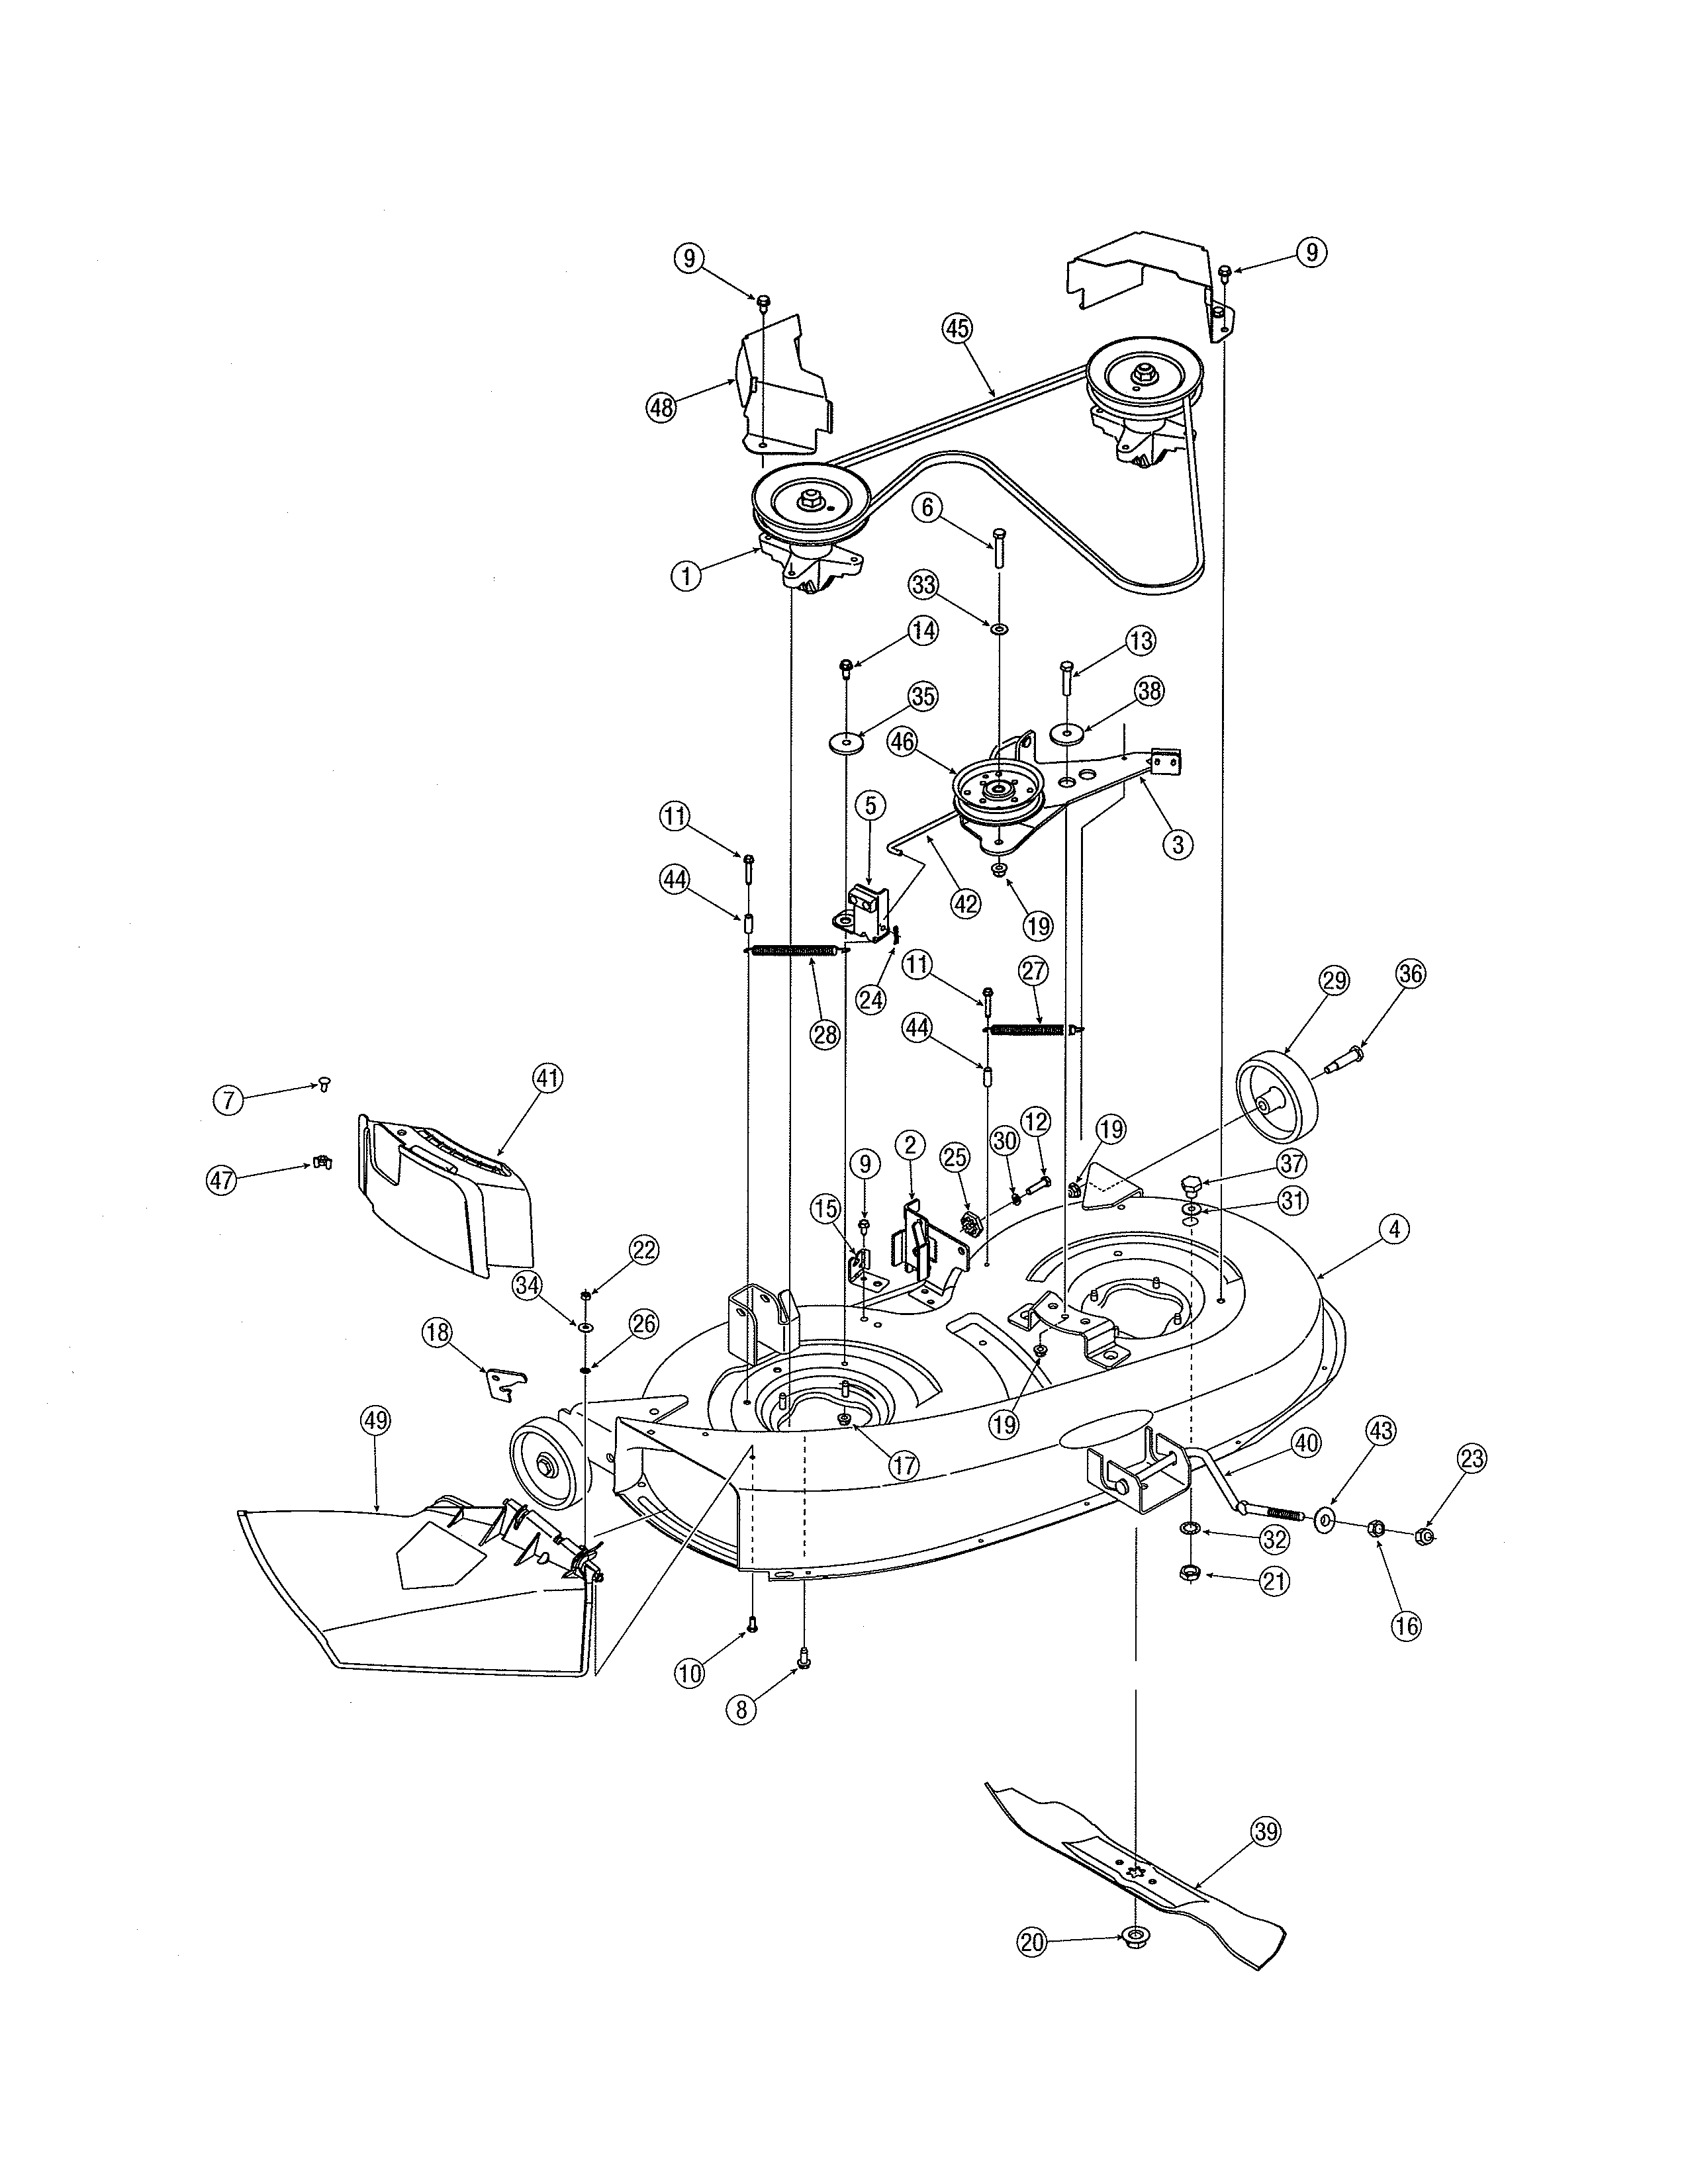 Scotts Lawn Mower Model 2554 Wiring Diagram Riding Mower